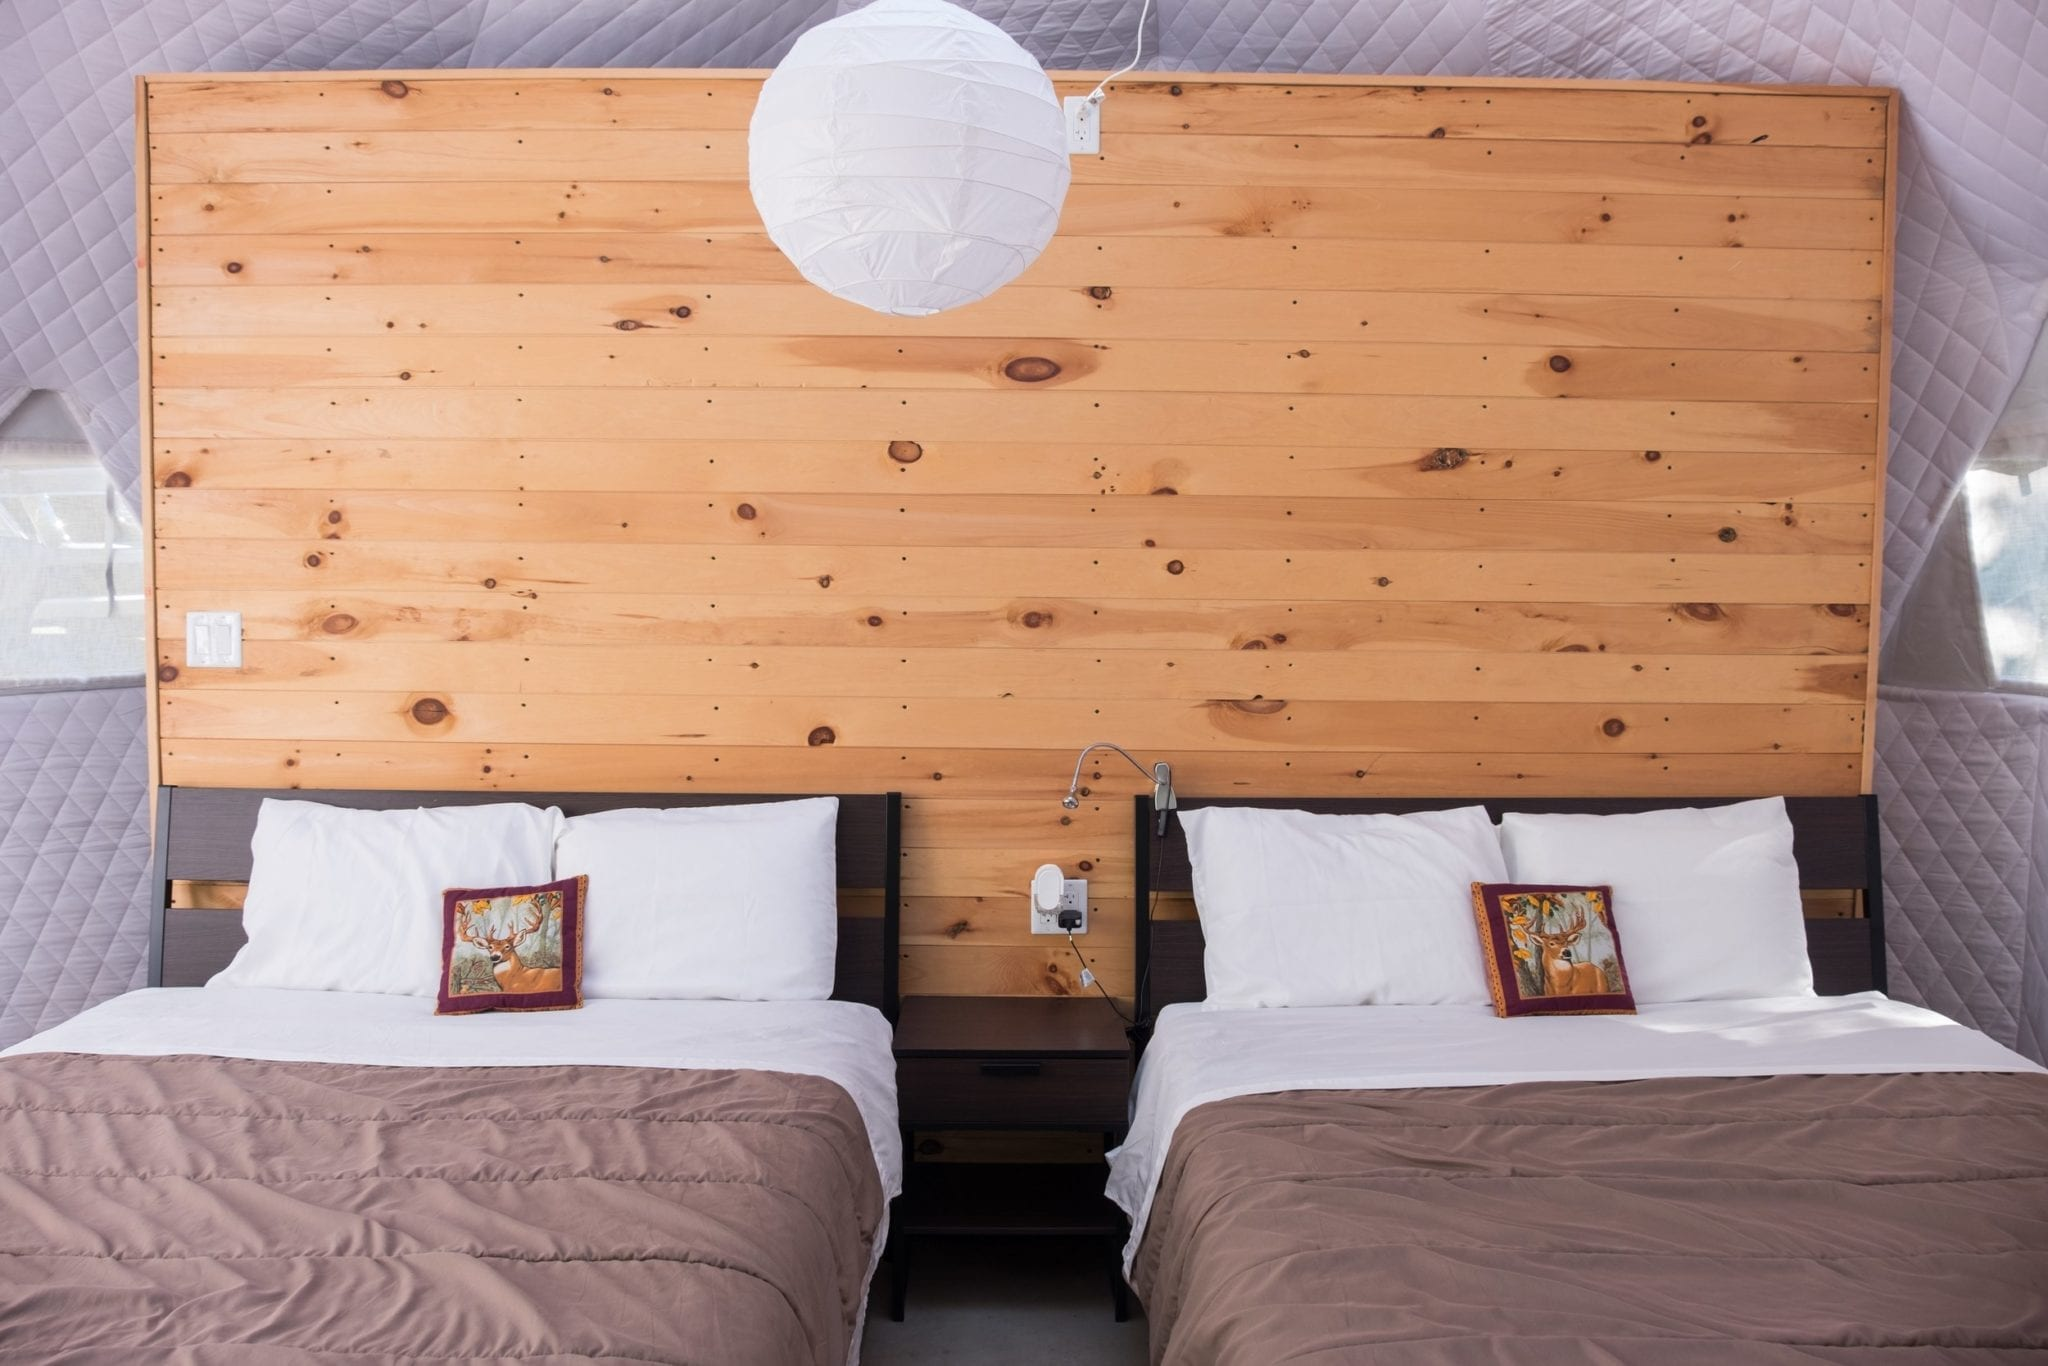 Two beds side by side with a wooden wall blinds them in the Blue Bayou Geodesic Domes